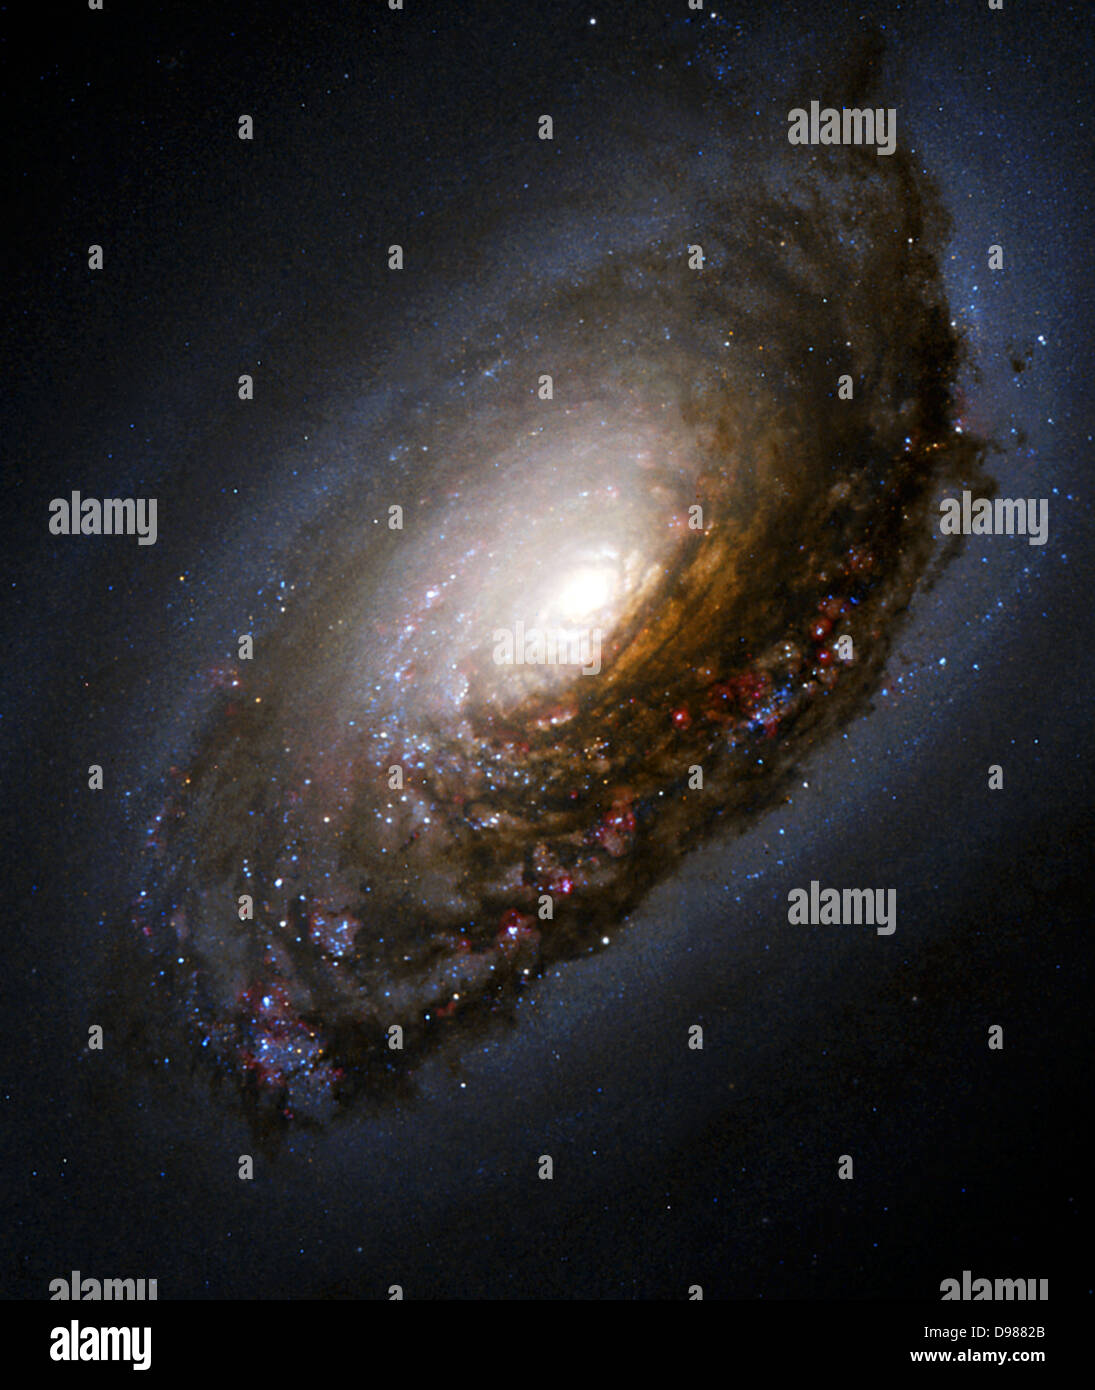 Dust Band Around the Nucleus of 'Black Eye Galaxy' M64. A collision of two galaxies has left a merged star - Stock Image